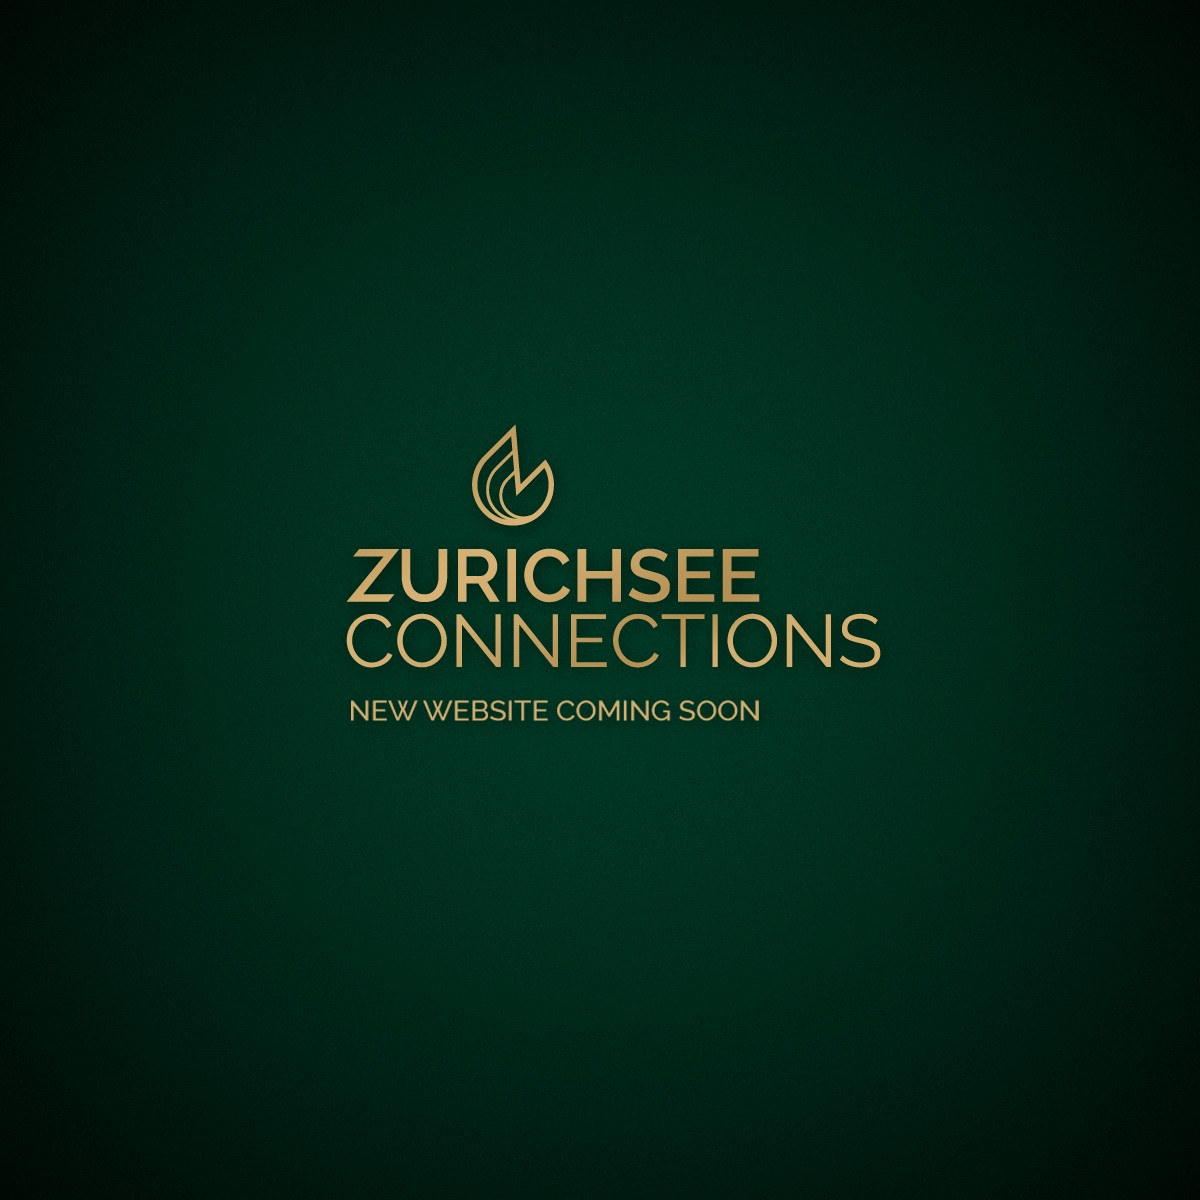 Zurichsee connections new website social booster